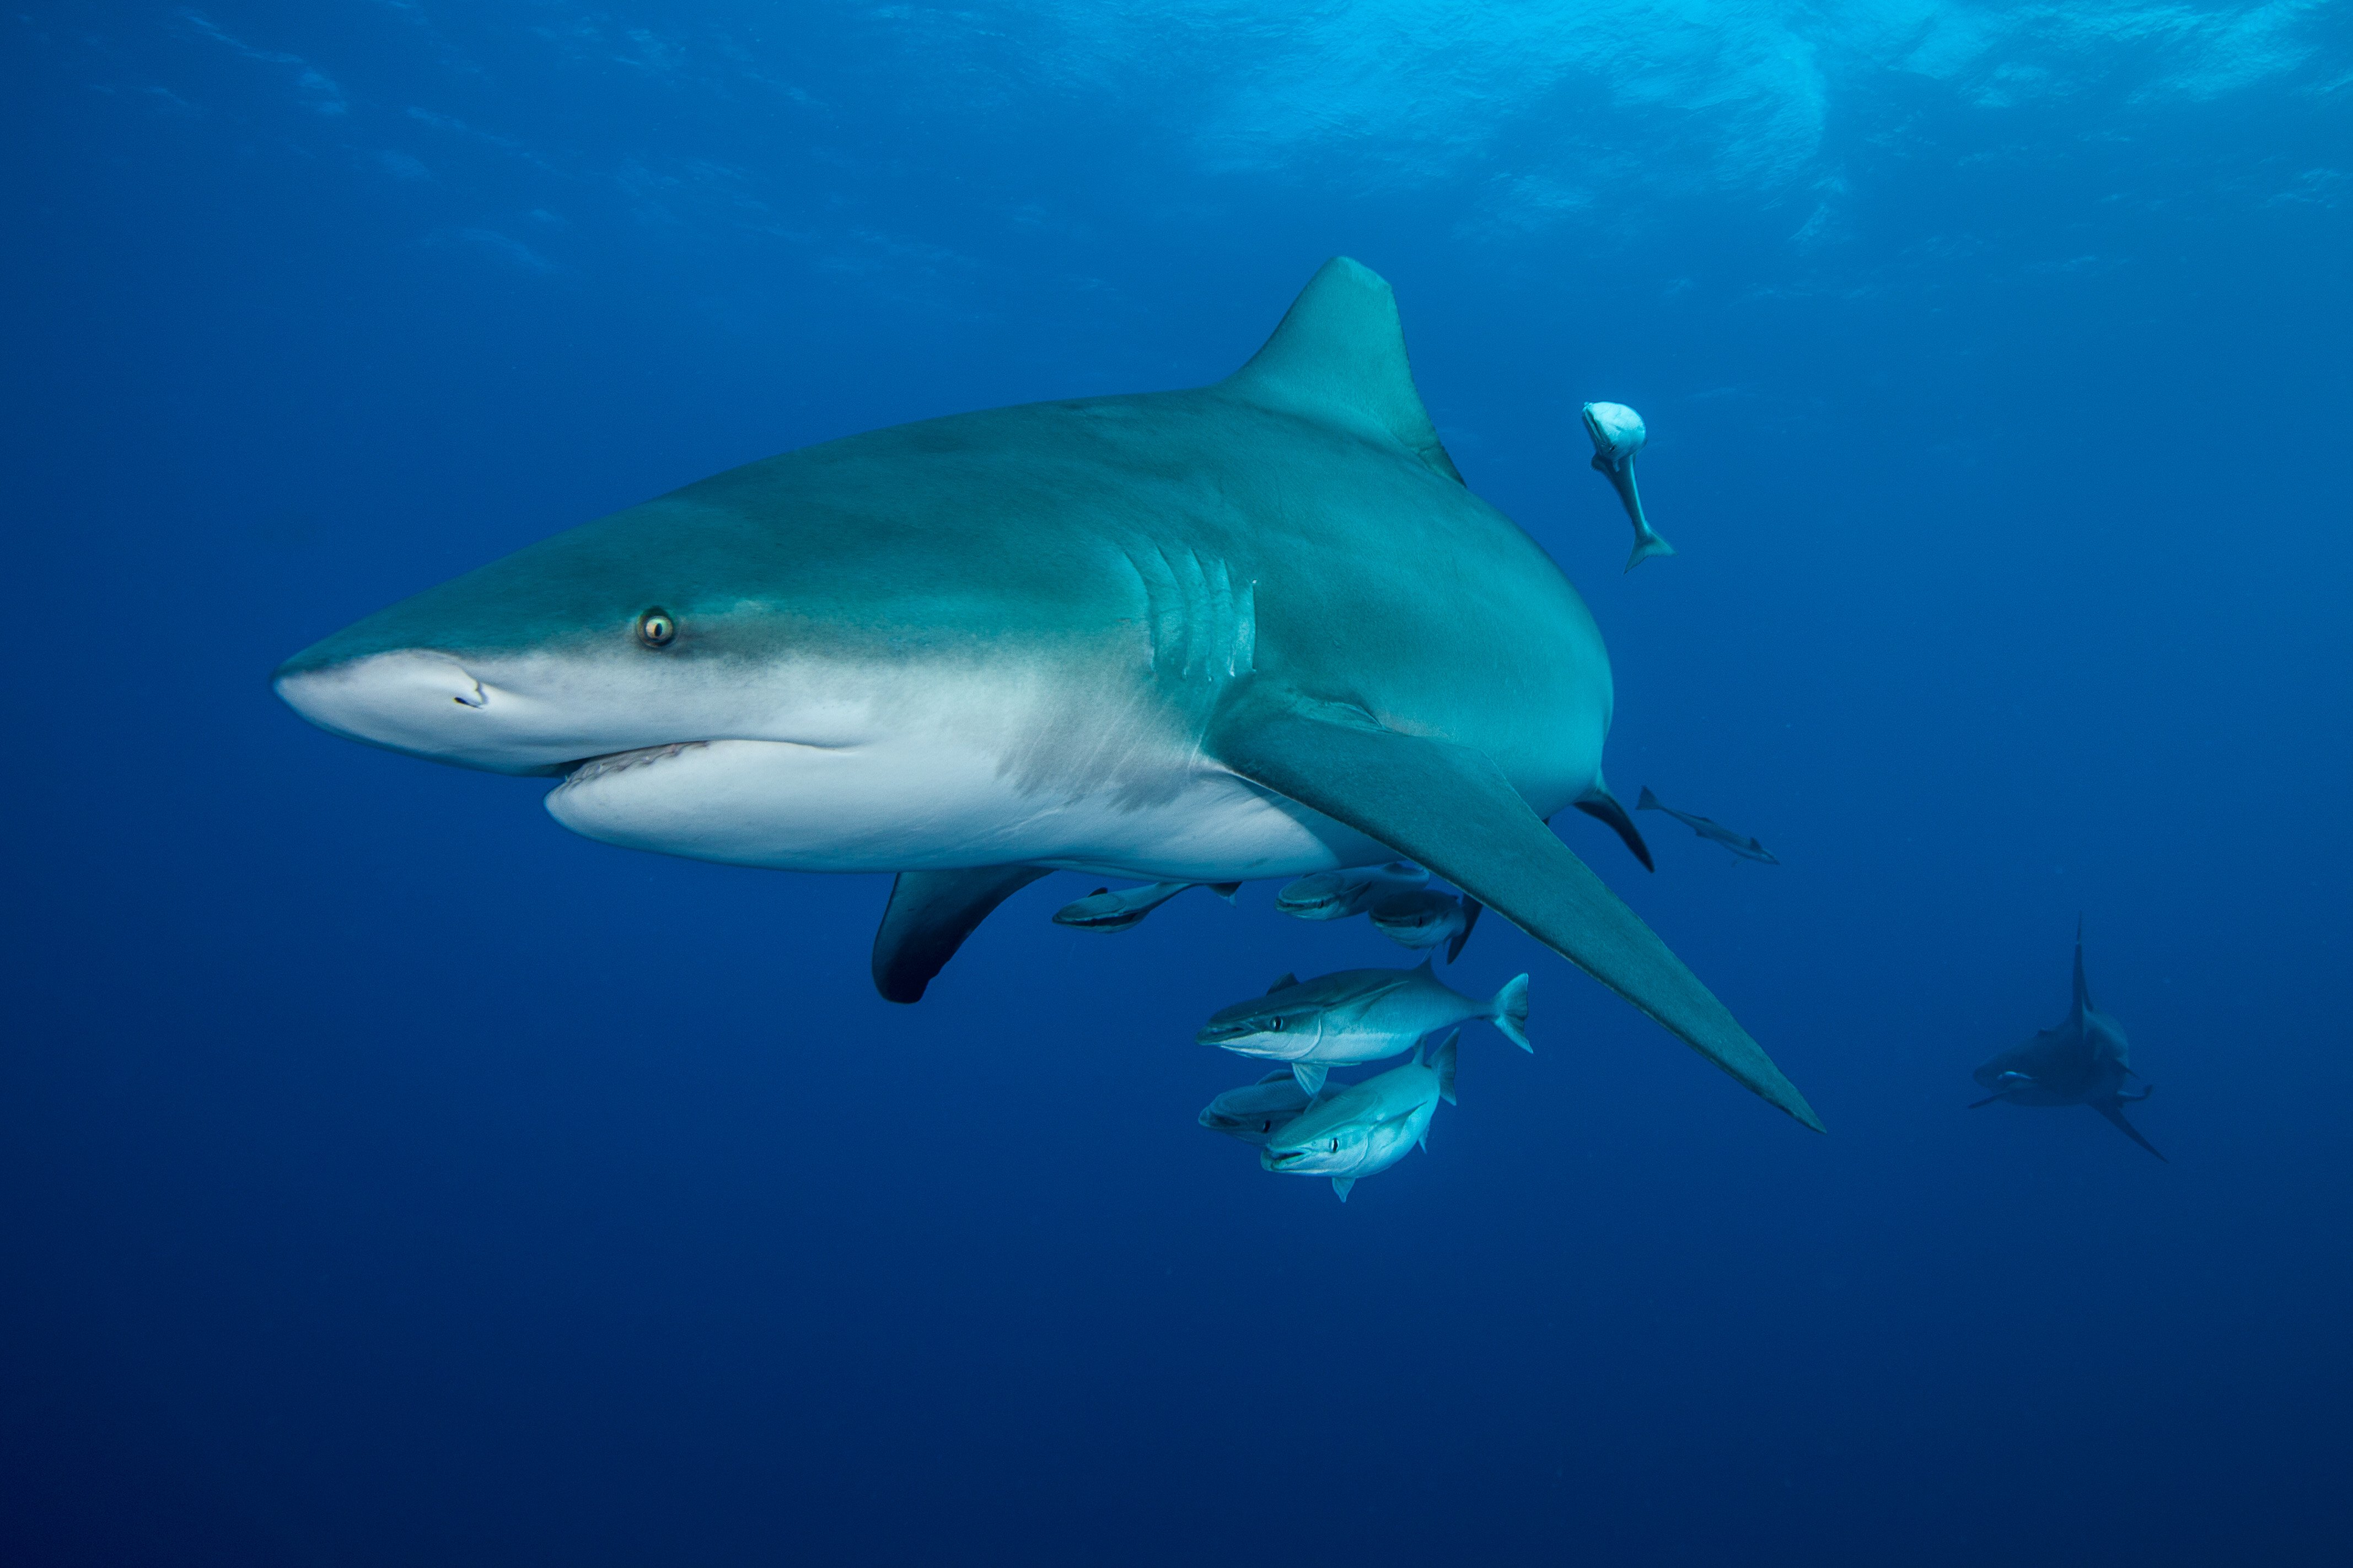 Why Aquariums Never Have Great White Sharks   Readers Digest